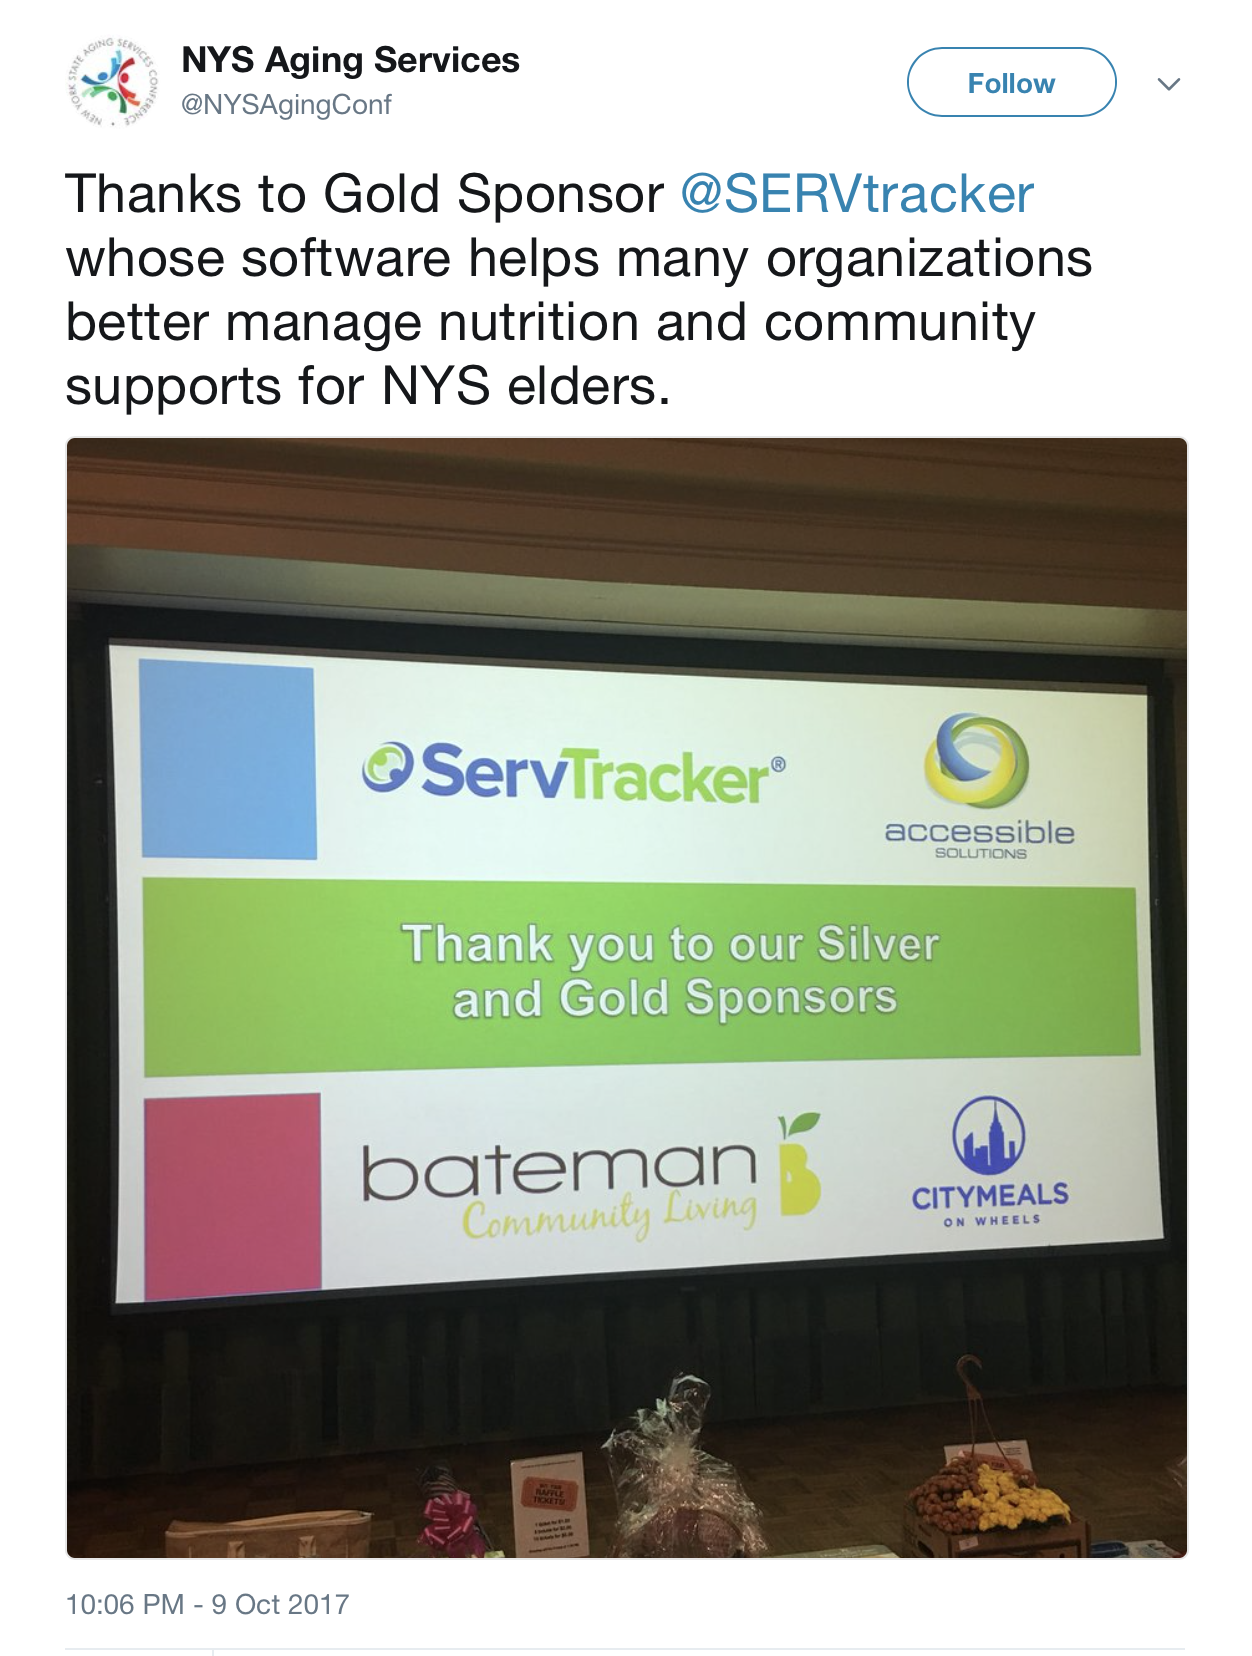 ServTracker Software